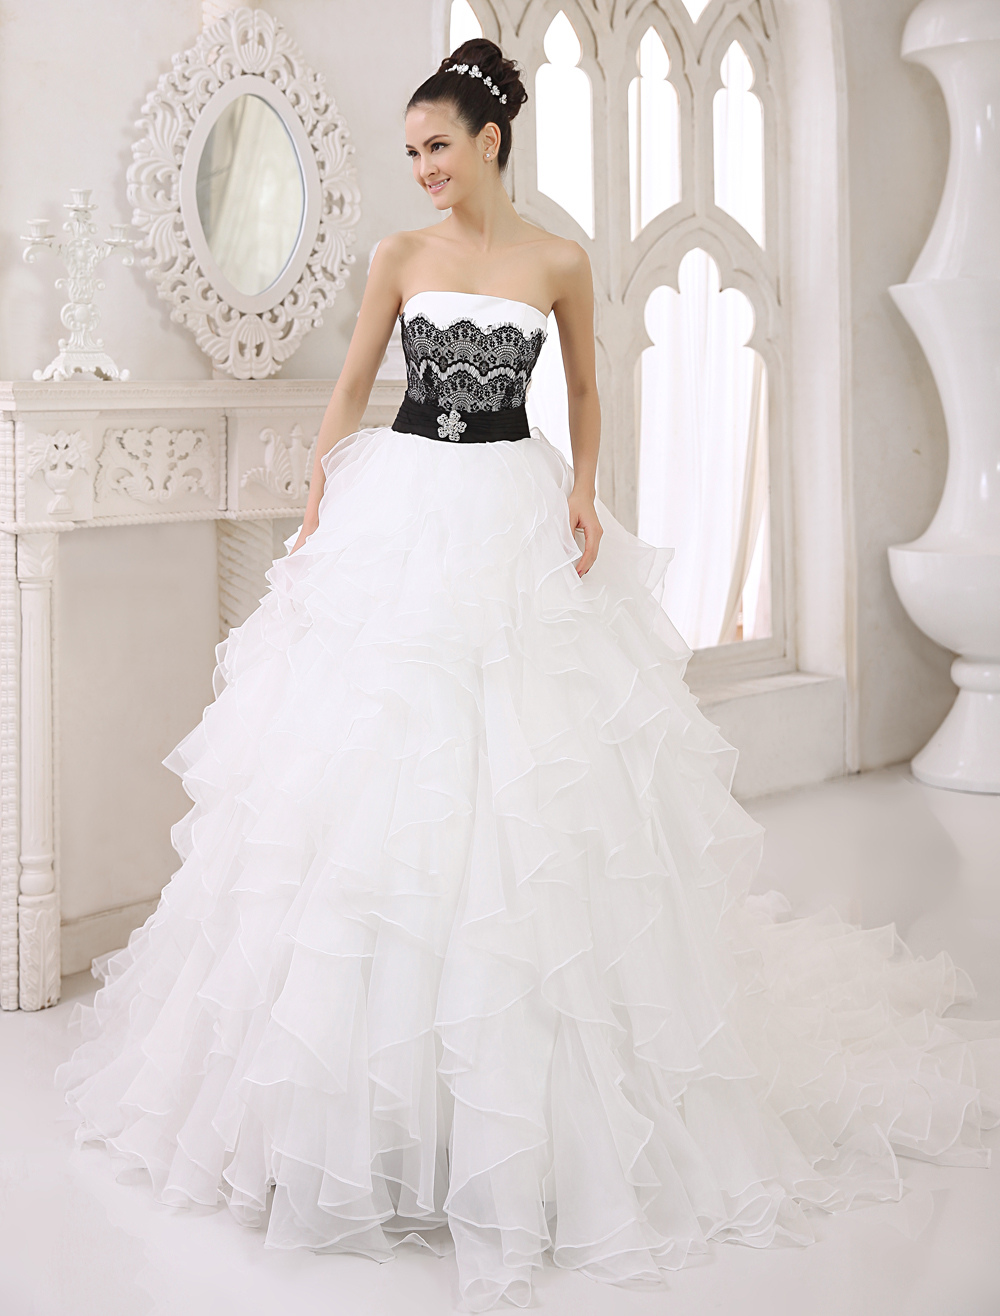 Buy Ivory Tulle A-line Brides Wedding Dress With Black Lace Bodice And Chapel Train Milanoo for $229.99 in Milanoo store